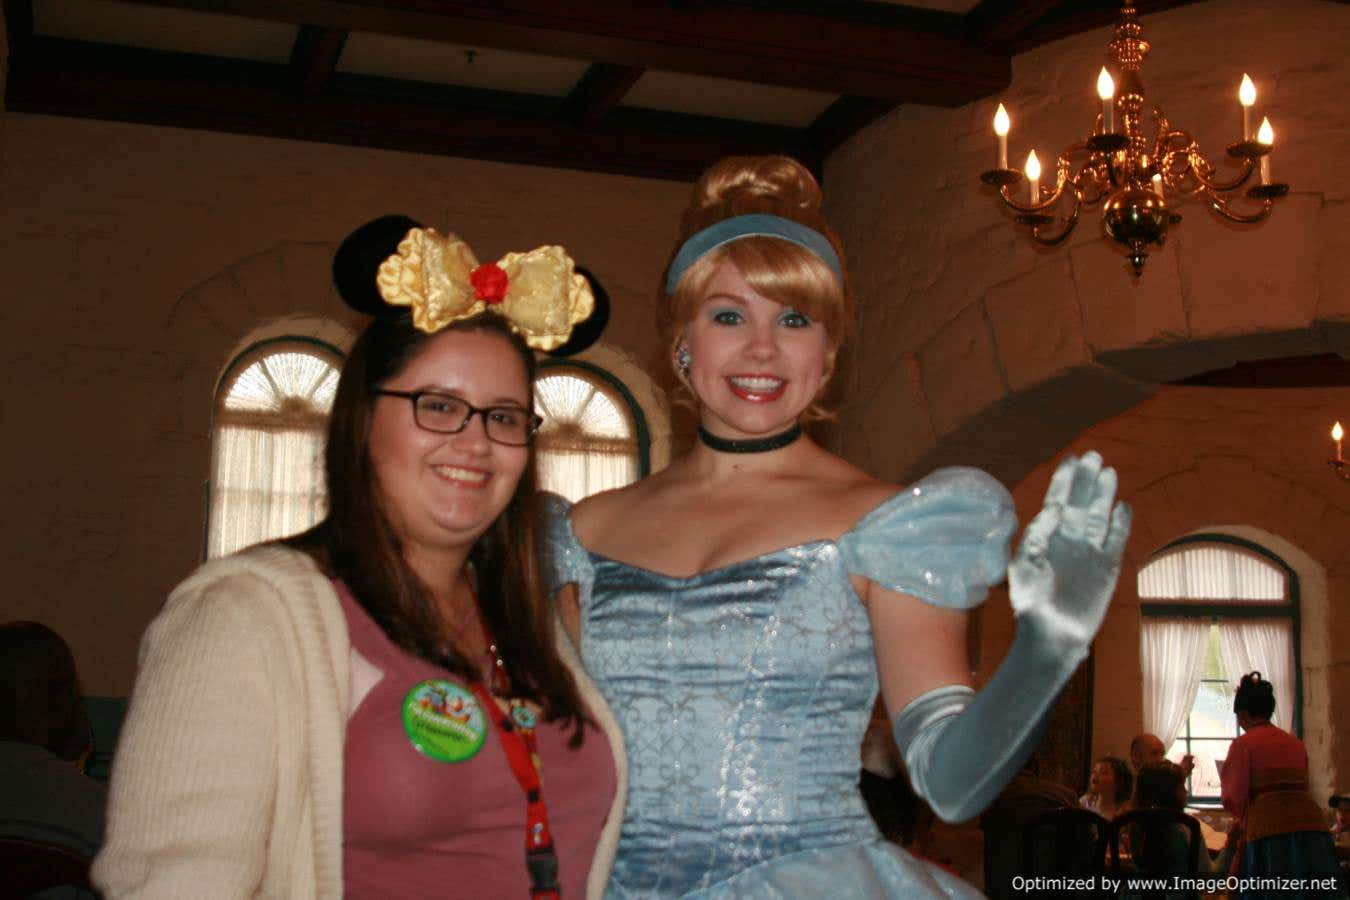 Go from overwhelmed to overjoyed with your Disney planning!